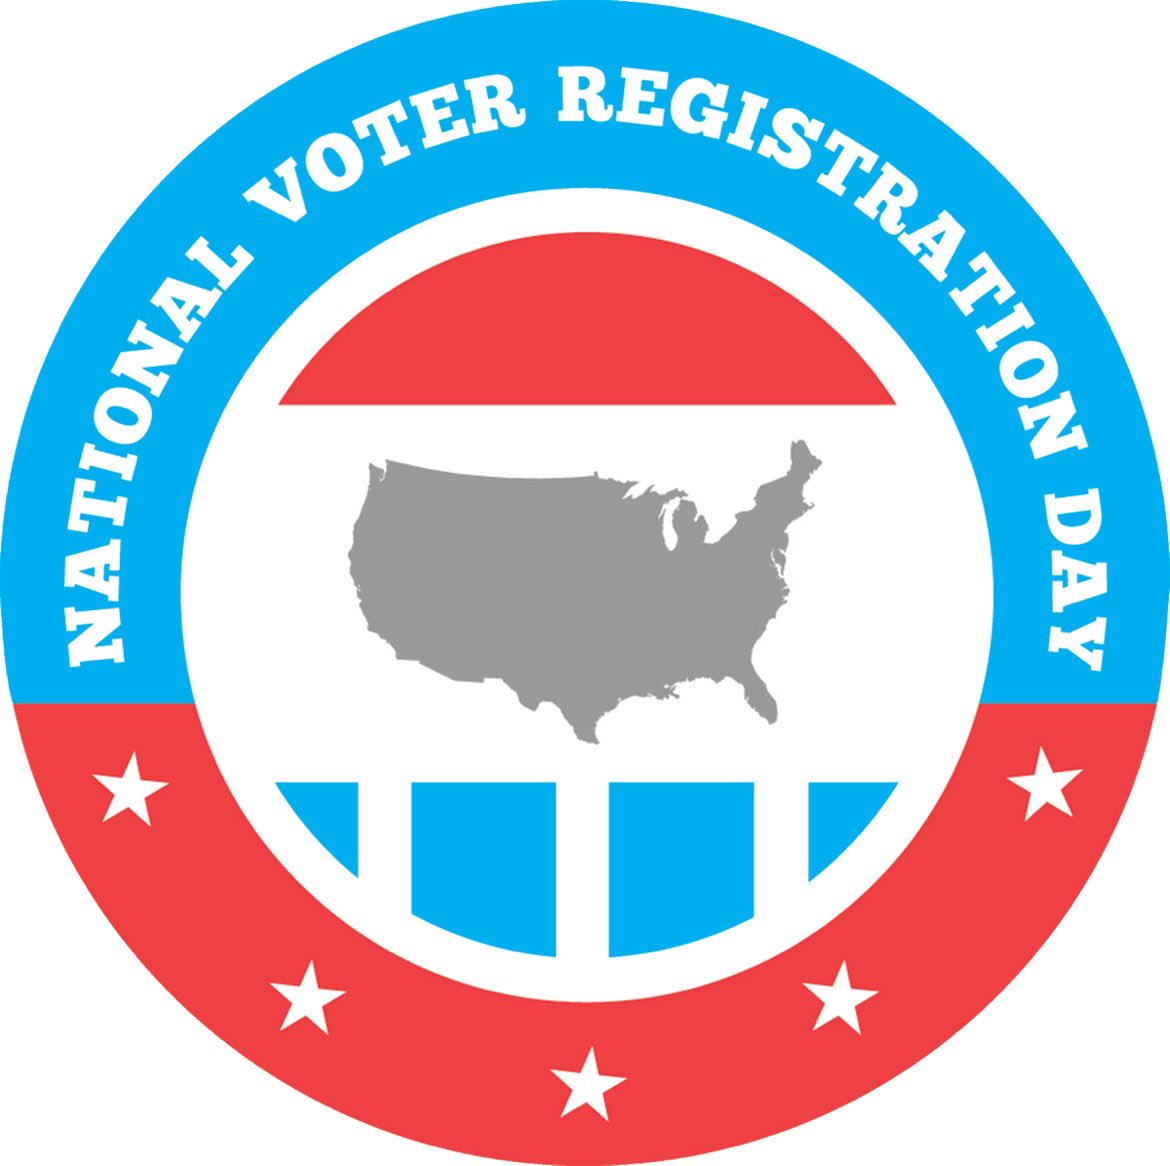 &quot;Your silence gives consent.&quot;  ~Plato  Register to Vote on  #NationalVoterRegistrationDay  tomorrow 9/26/17!    #1u #MotivationMonday <br>http://pic.twitter.com/U2PrmlY62I